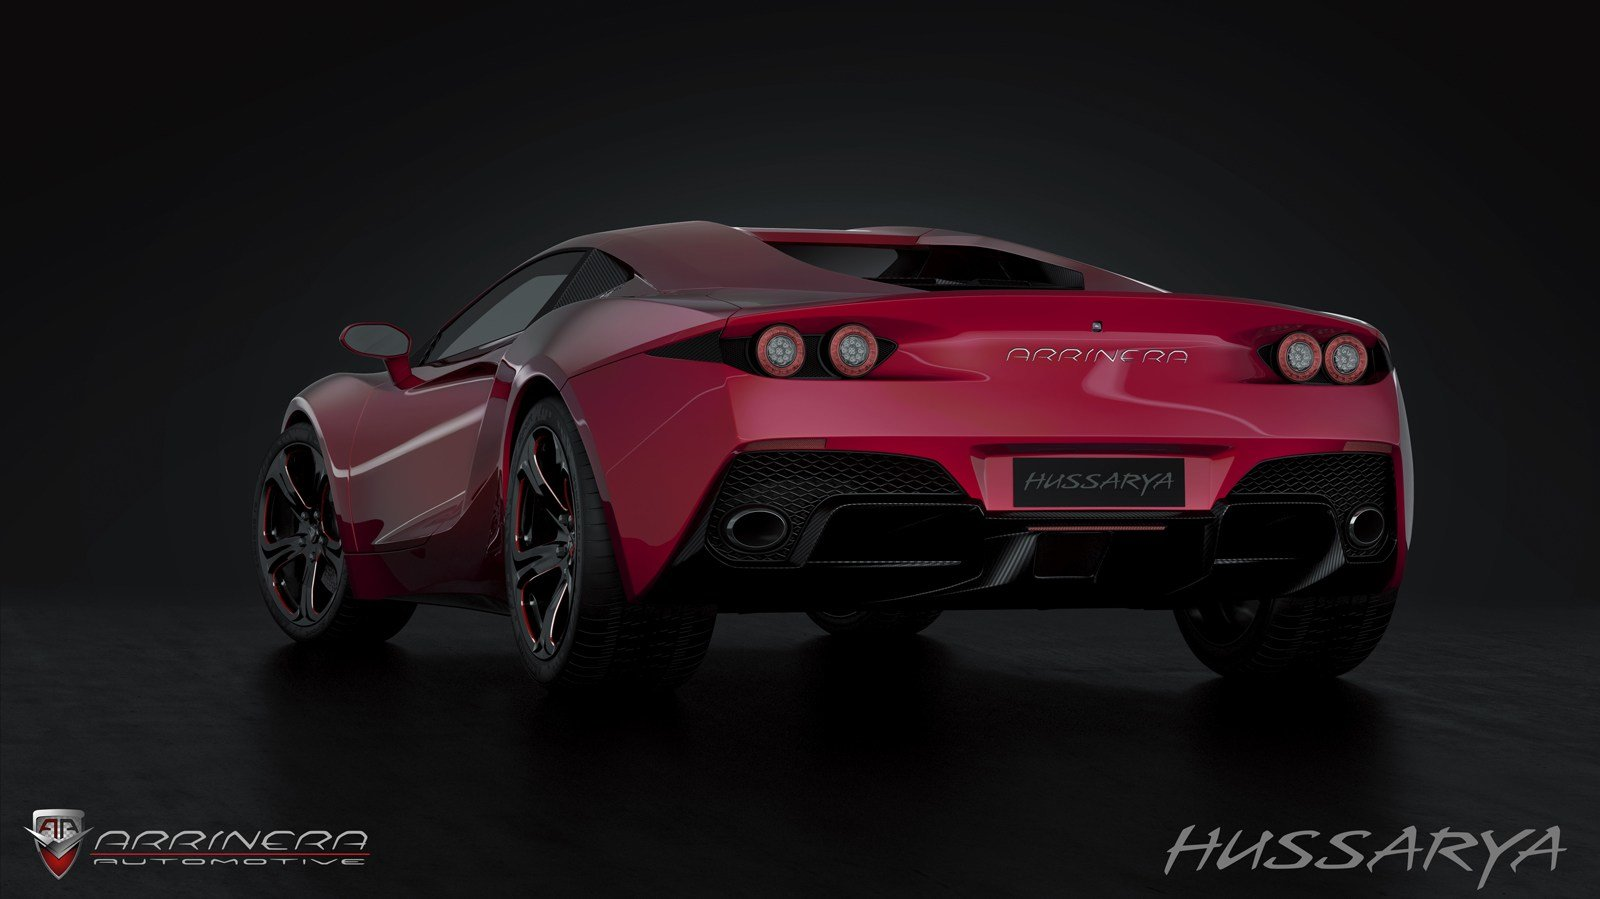 Latest Lean Arrinera Hussarya Car The Ultimate Polish Supercar Free Download